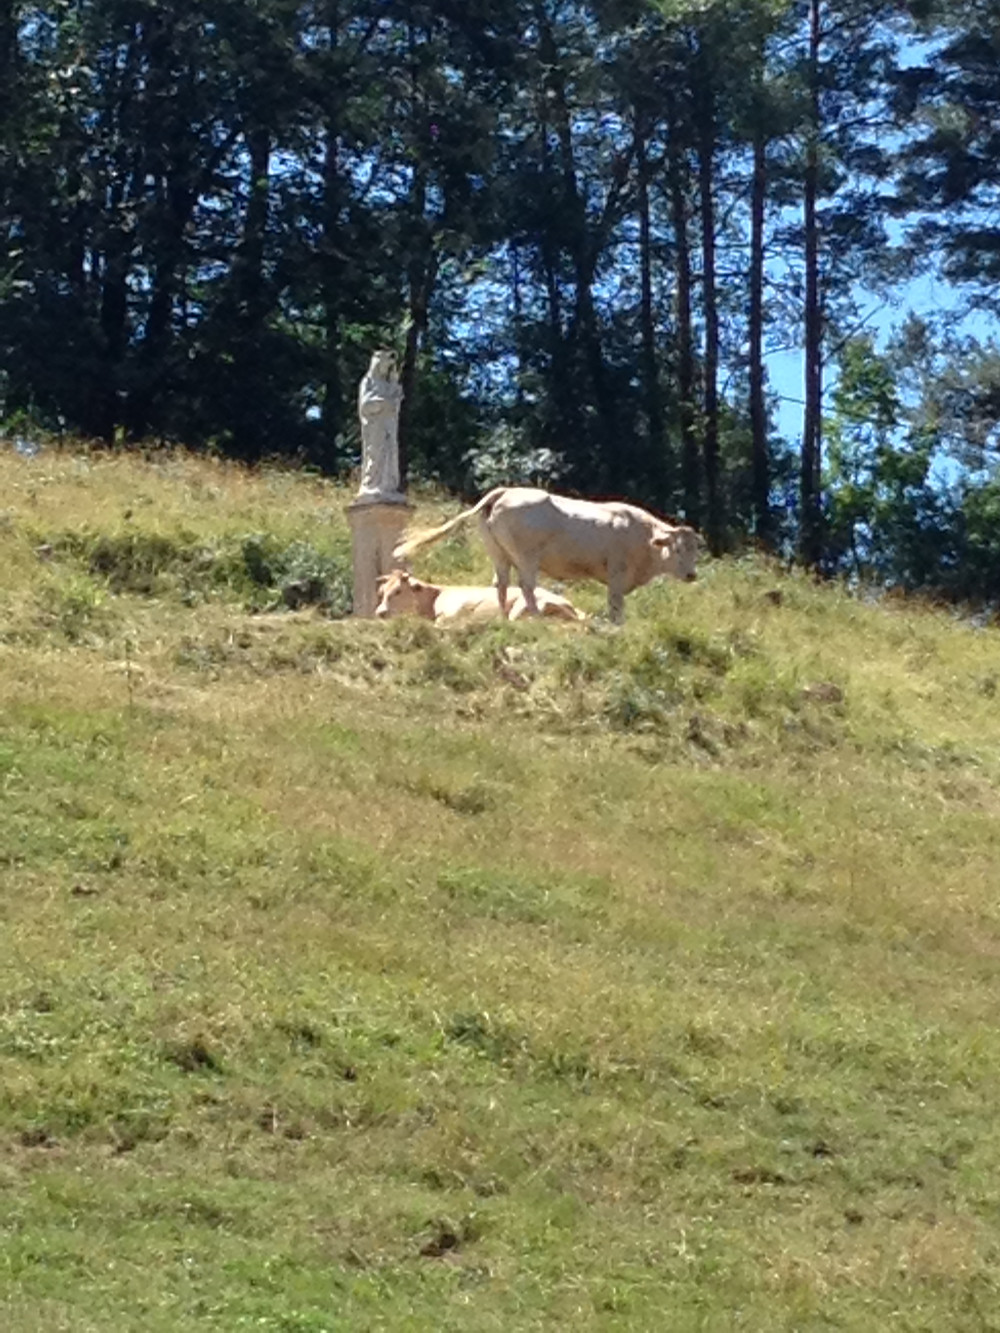 Peaceful Charolais in the Bessed Forest